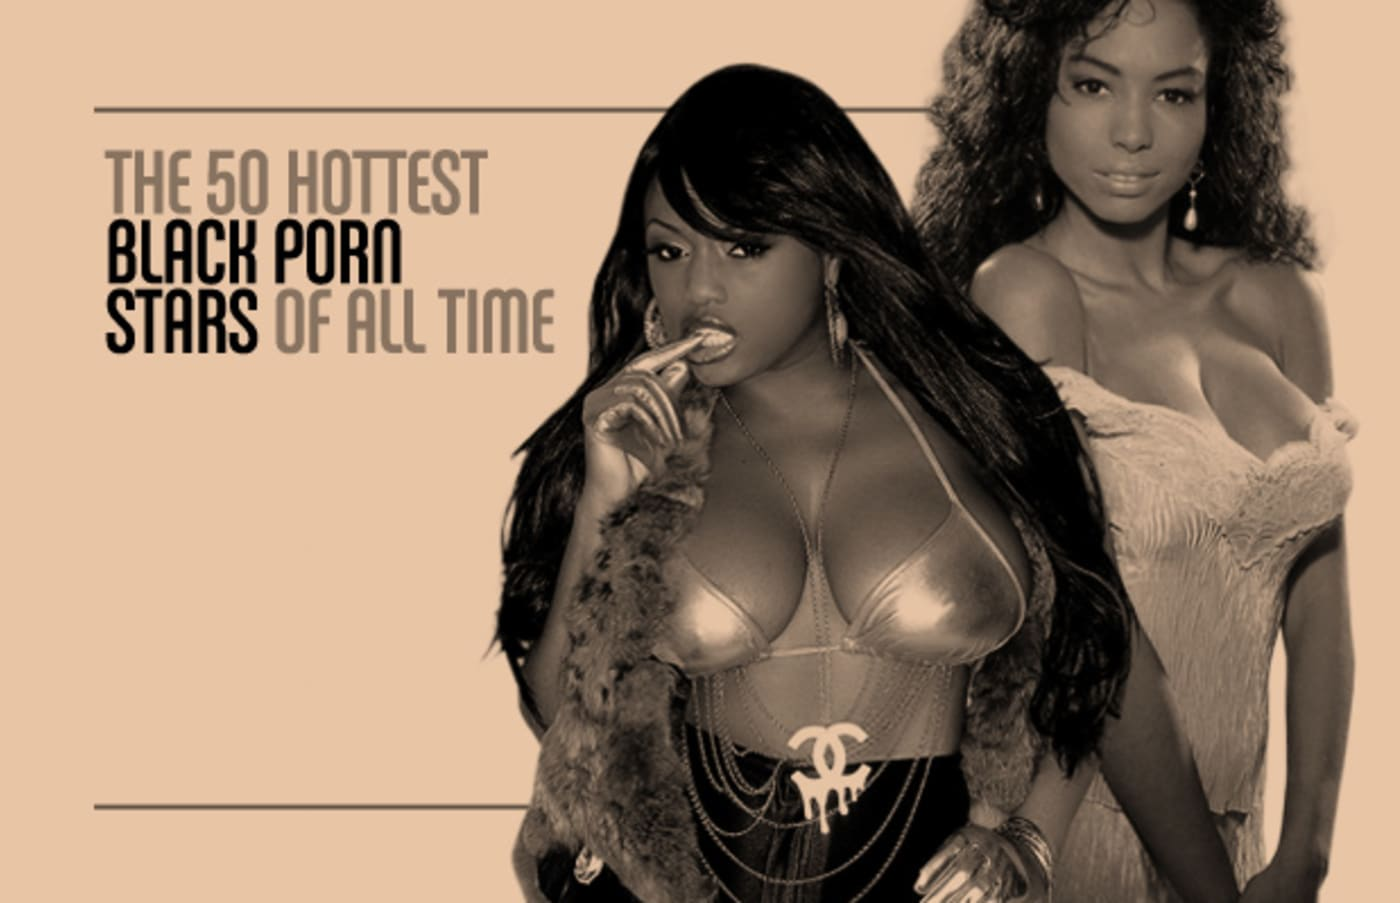 Hottest Black Pornstars: The Best Black Pornstars of All Time ...